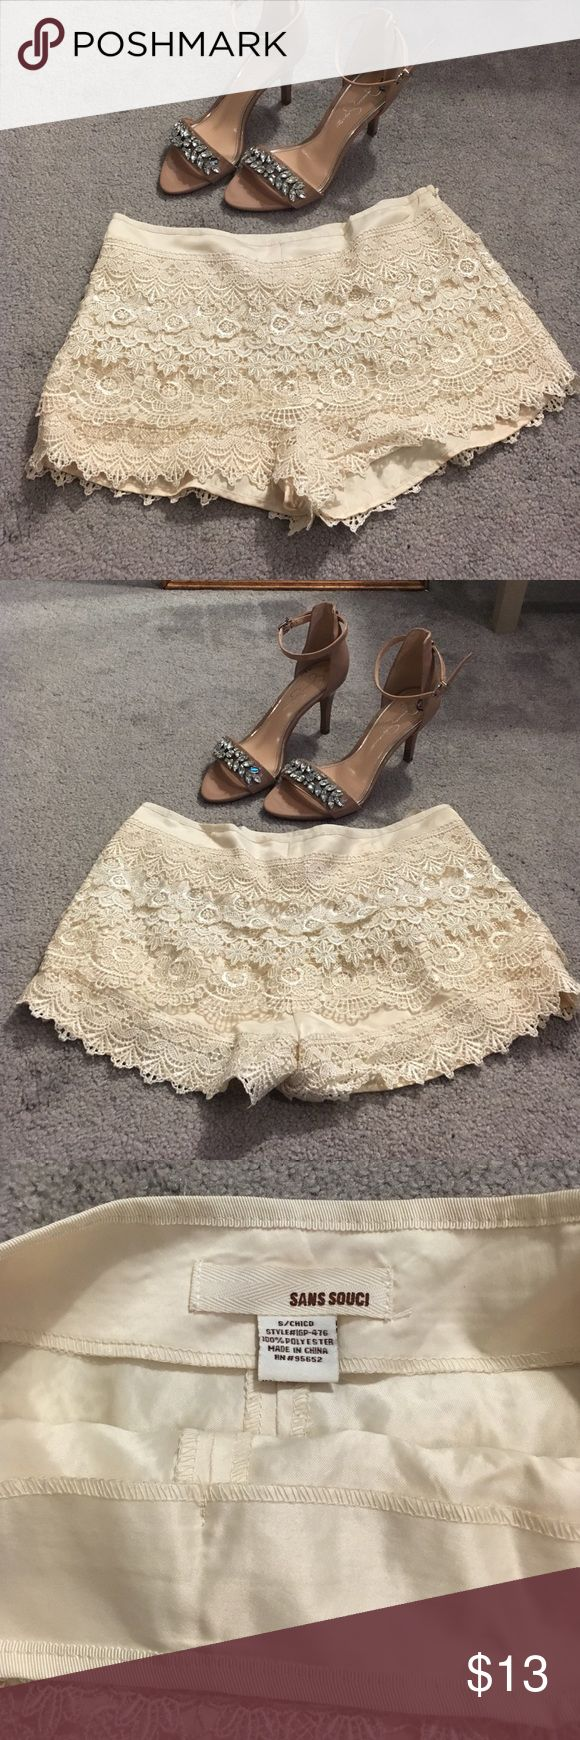 Cream lace shorts High waisted lace shorts in cream colored. Wit zipper on the left hip. Worn once. Sans Souci Shorts